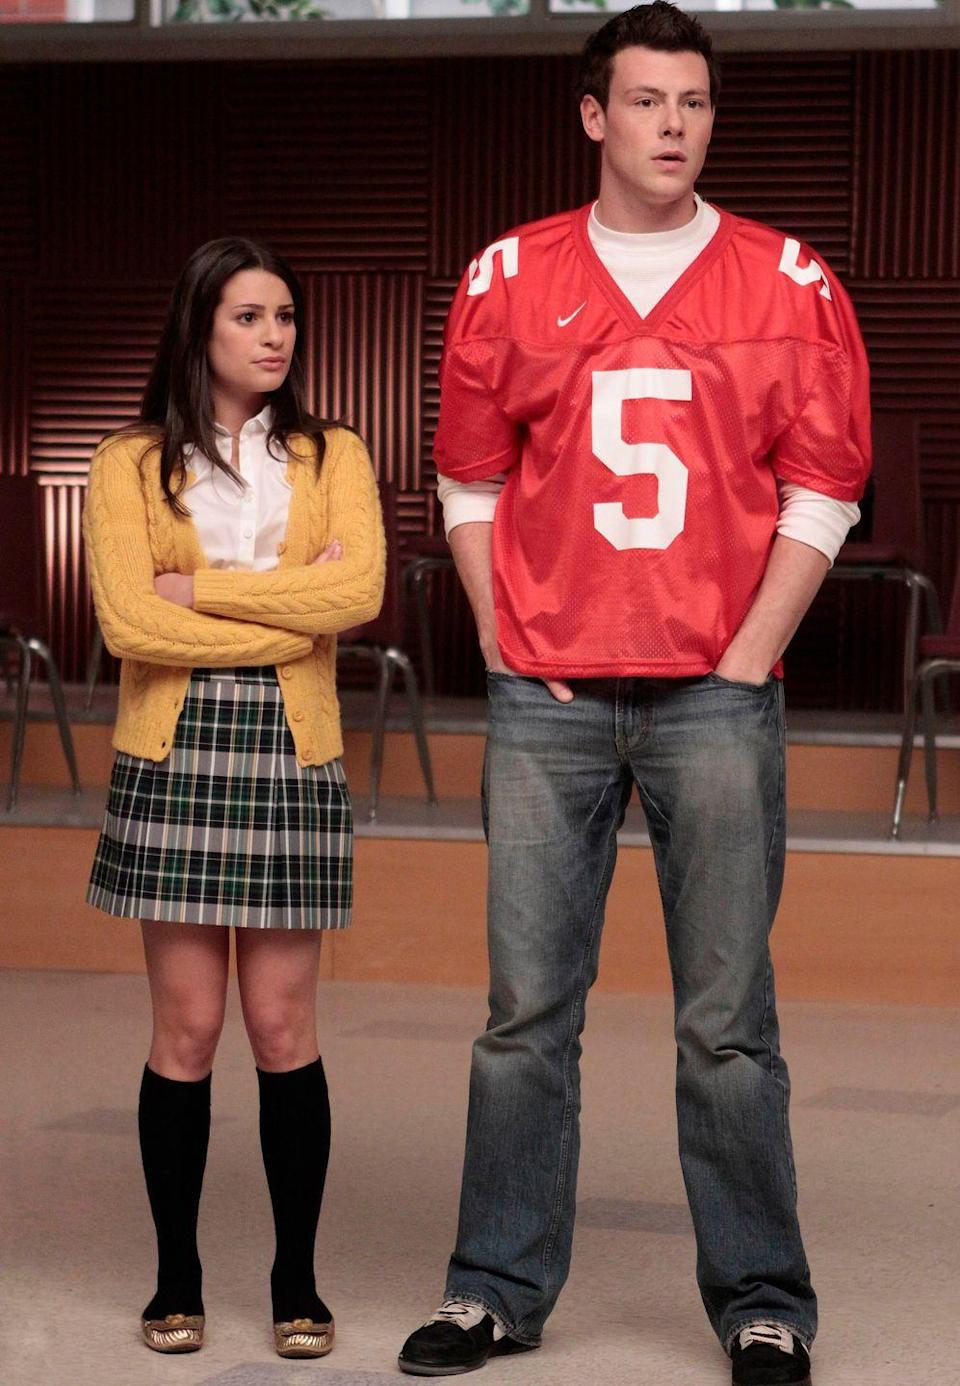 """<p>Fans weren't thrilled at the possibility of Lea Michele, Cory Monteith, and Chris Colfer graduating at the end of season three. """"You can keep them on the show for six years and people will criticize you for not being realistic, or you can be really true to life and say when they started the show they were very clearly sophomores and they should graduate at the end of their senior year,"""" showrunner Ryan Murphy told <a href=""""https://www.hollywoodreporter.com/live-feed/glee-lea-michele-chris-colfer-210869"""" rel=""""nofollow noopener"""" target=""""_blank"""" data-ylk=""""slk:The Hollywood Reporter"""" class=""""link rapid-noclick-resp""""><em>The Hollywood Reporter</em></a>.</p>"""